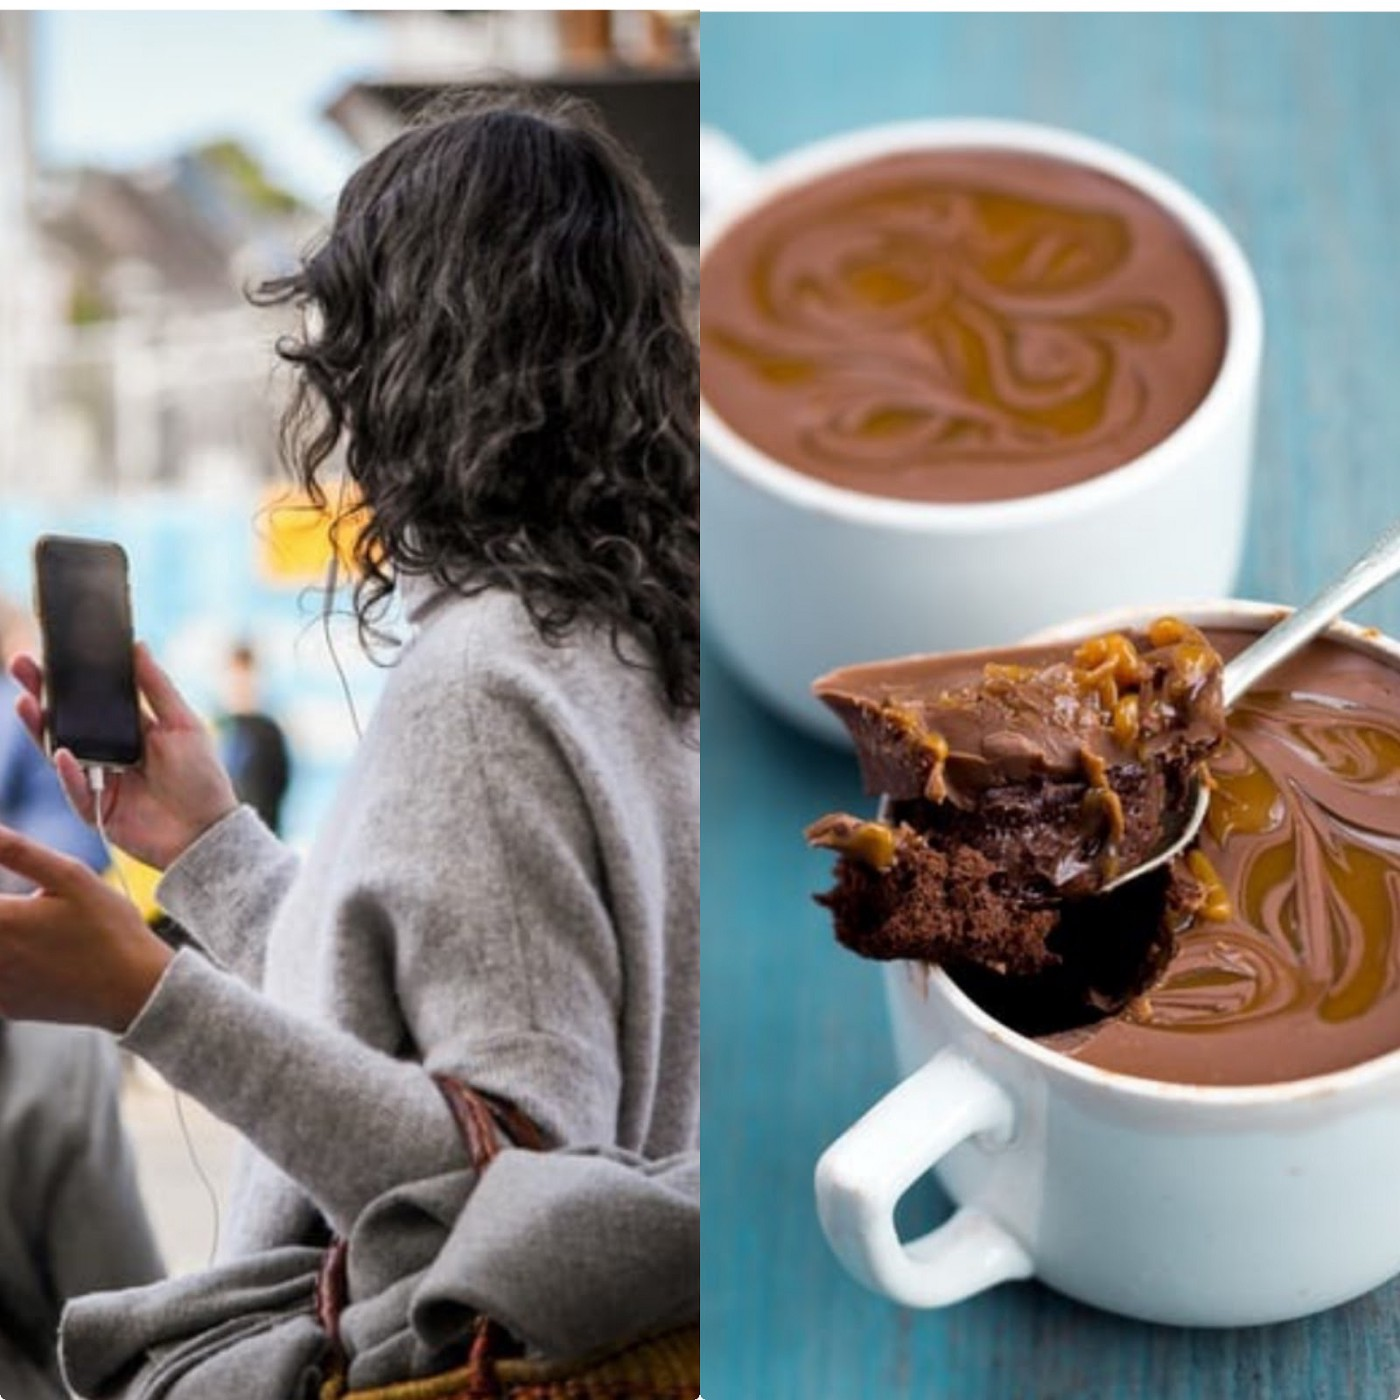 Bake a cake, surprise your friend over video call